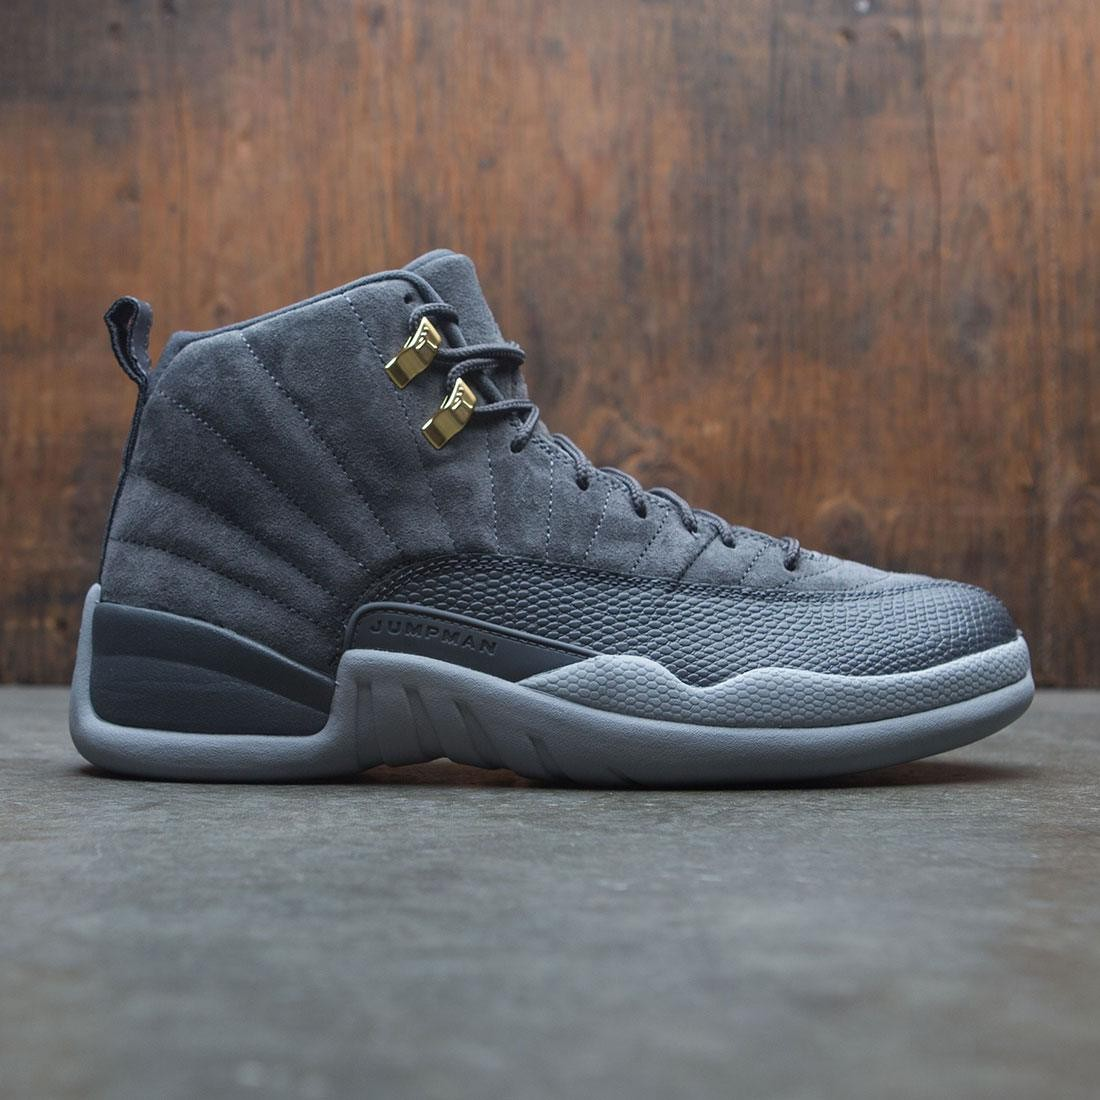 3143832a643 jordan men air jordan 12 retro dark grey dark grey wolf grey